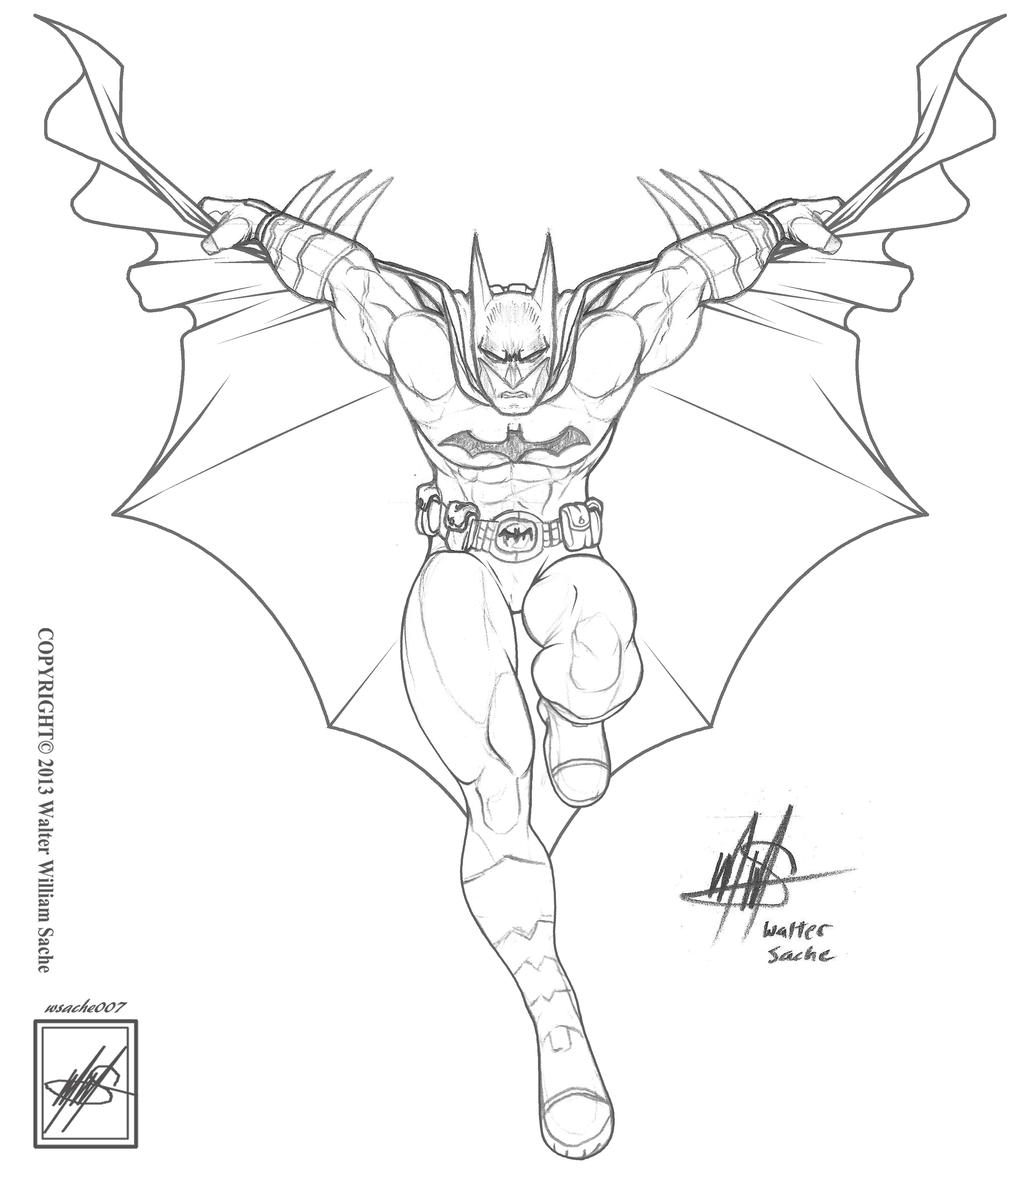 The Batman_sketch For My Uncles Birthday_n Progres By Wsache007 On DeviantArt